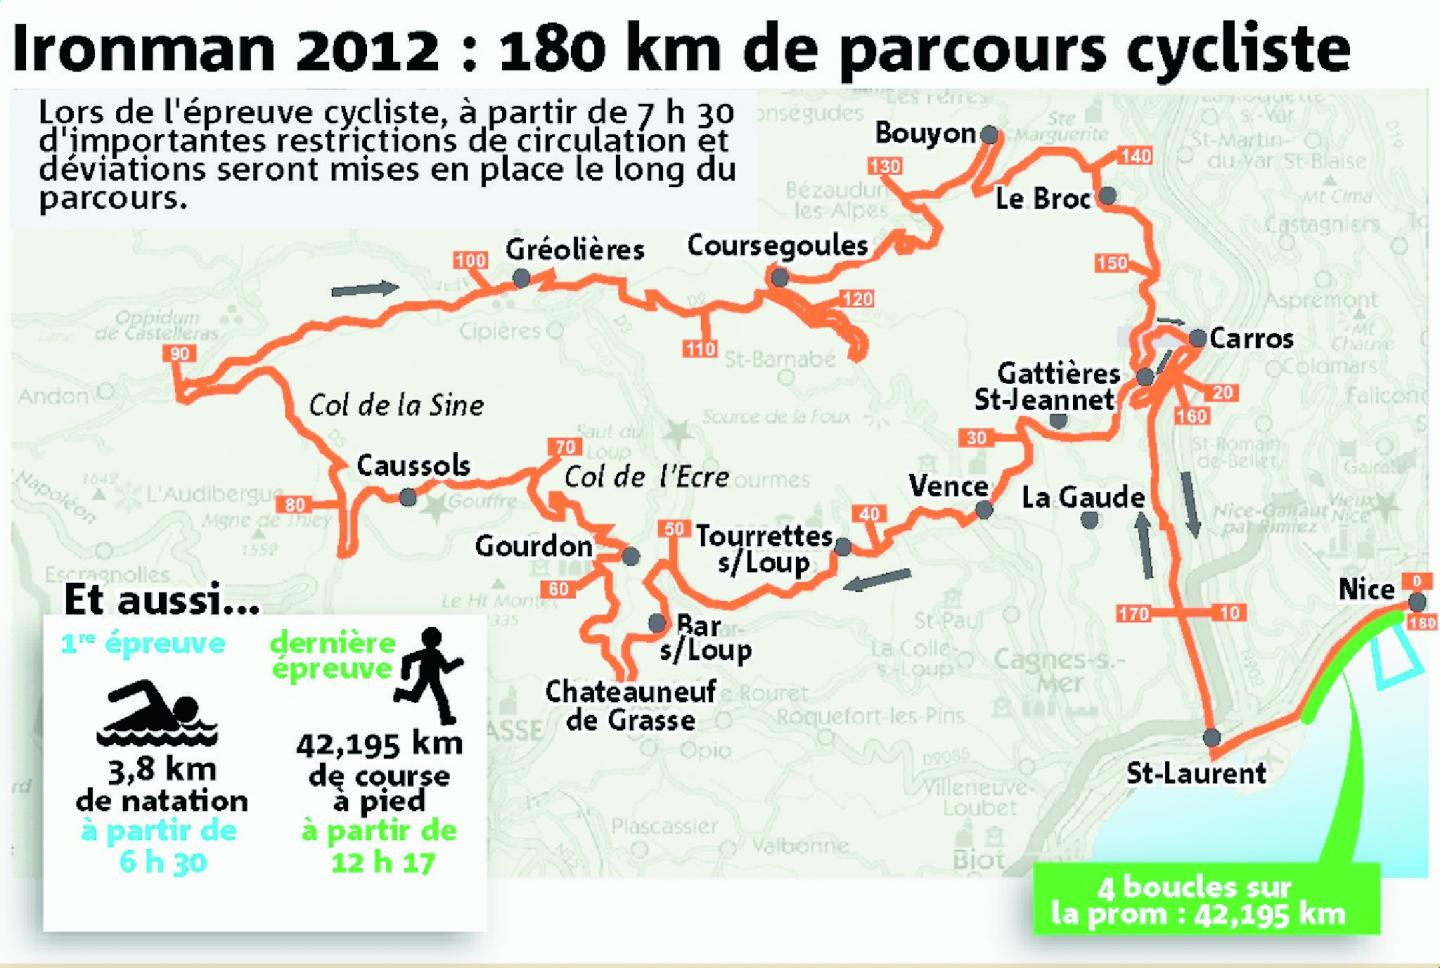 IronMan2012 parcours